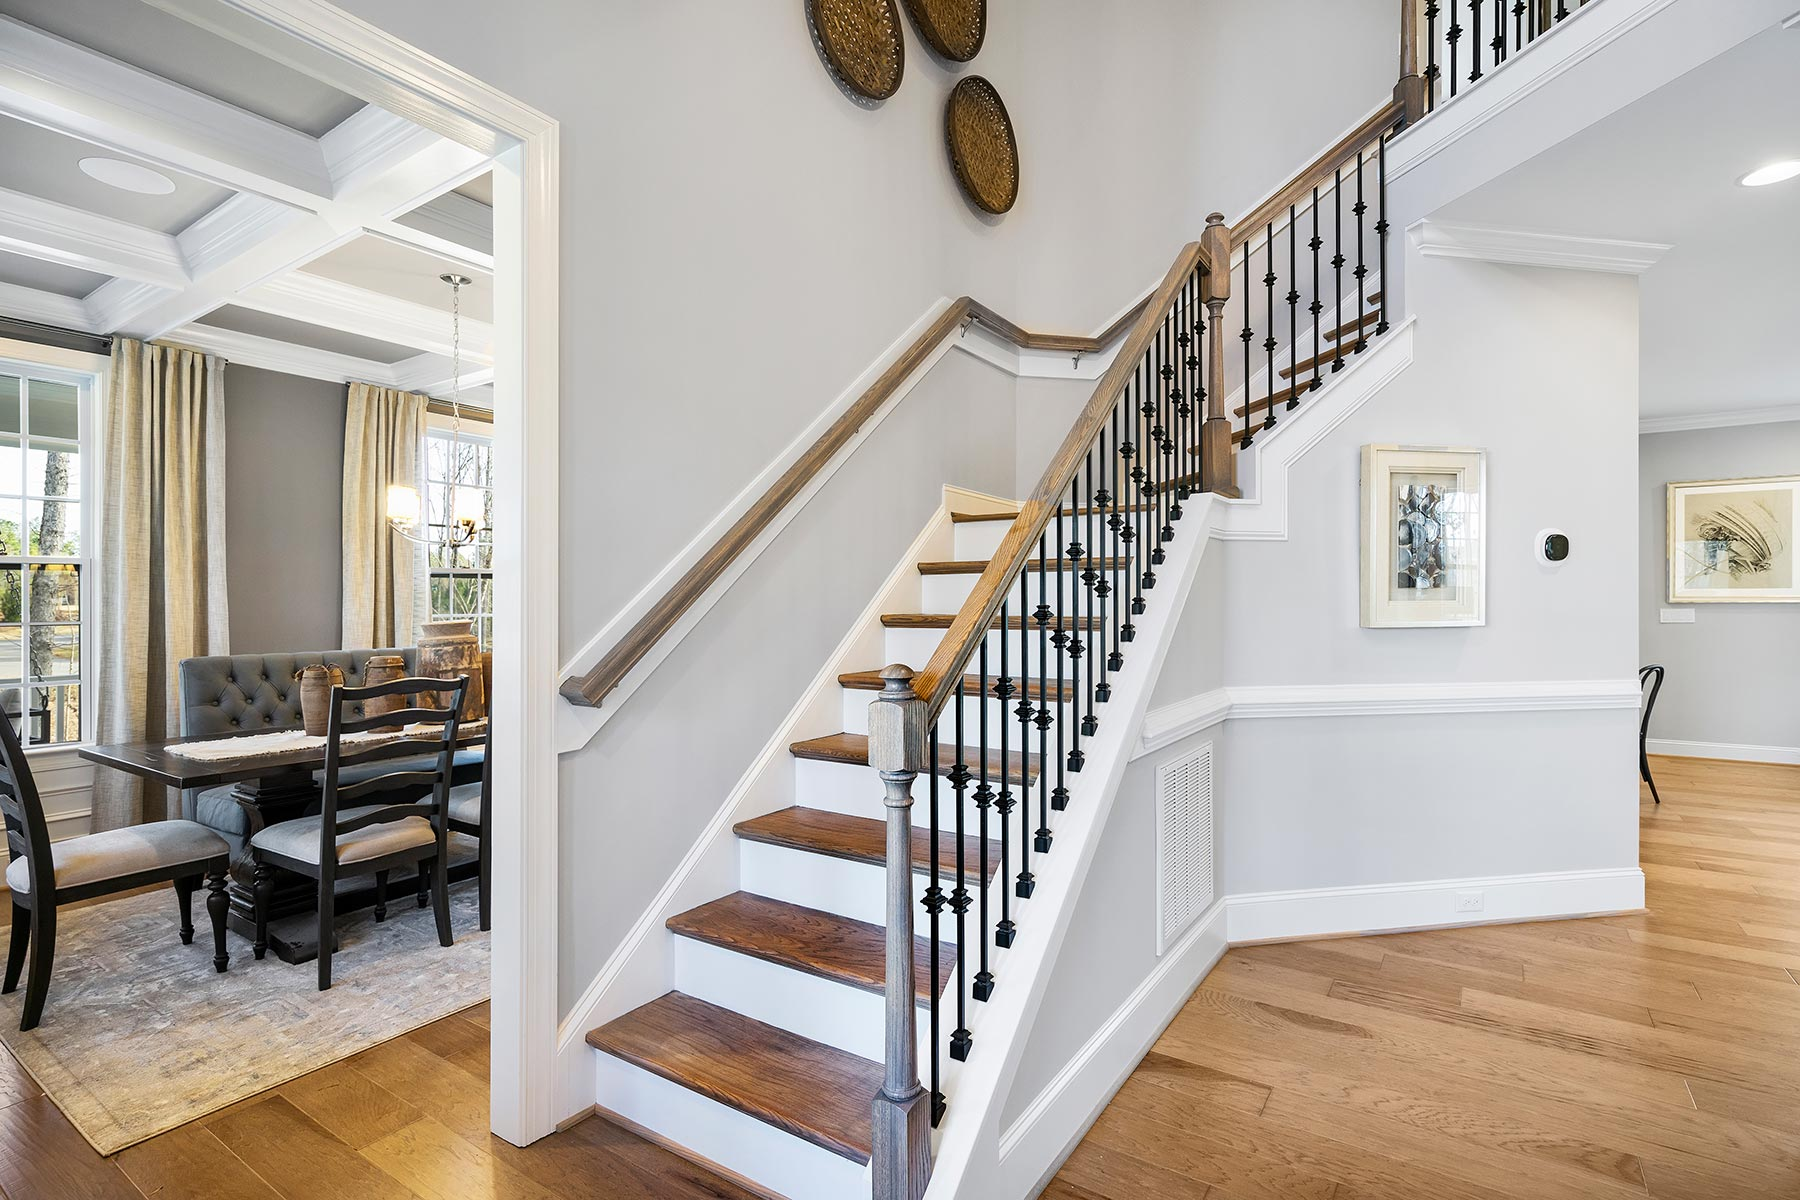 Ballentine Place Stairs in Holly Springs North Carolina by Mattamy Homes